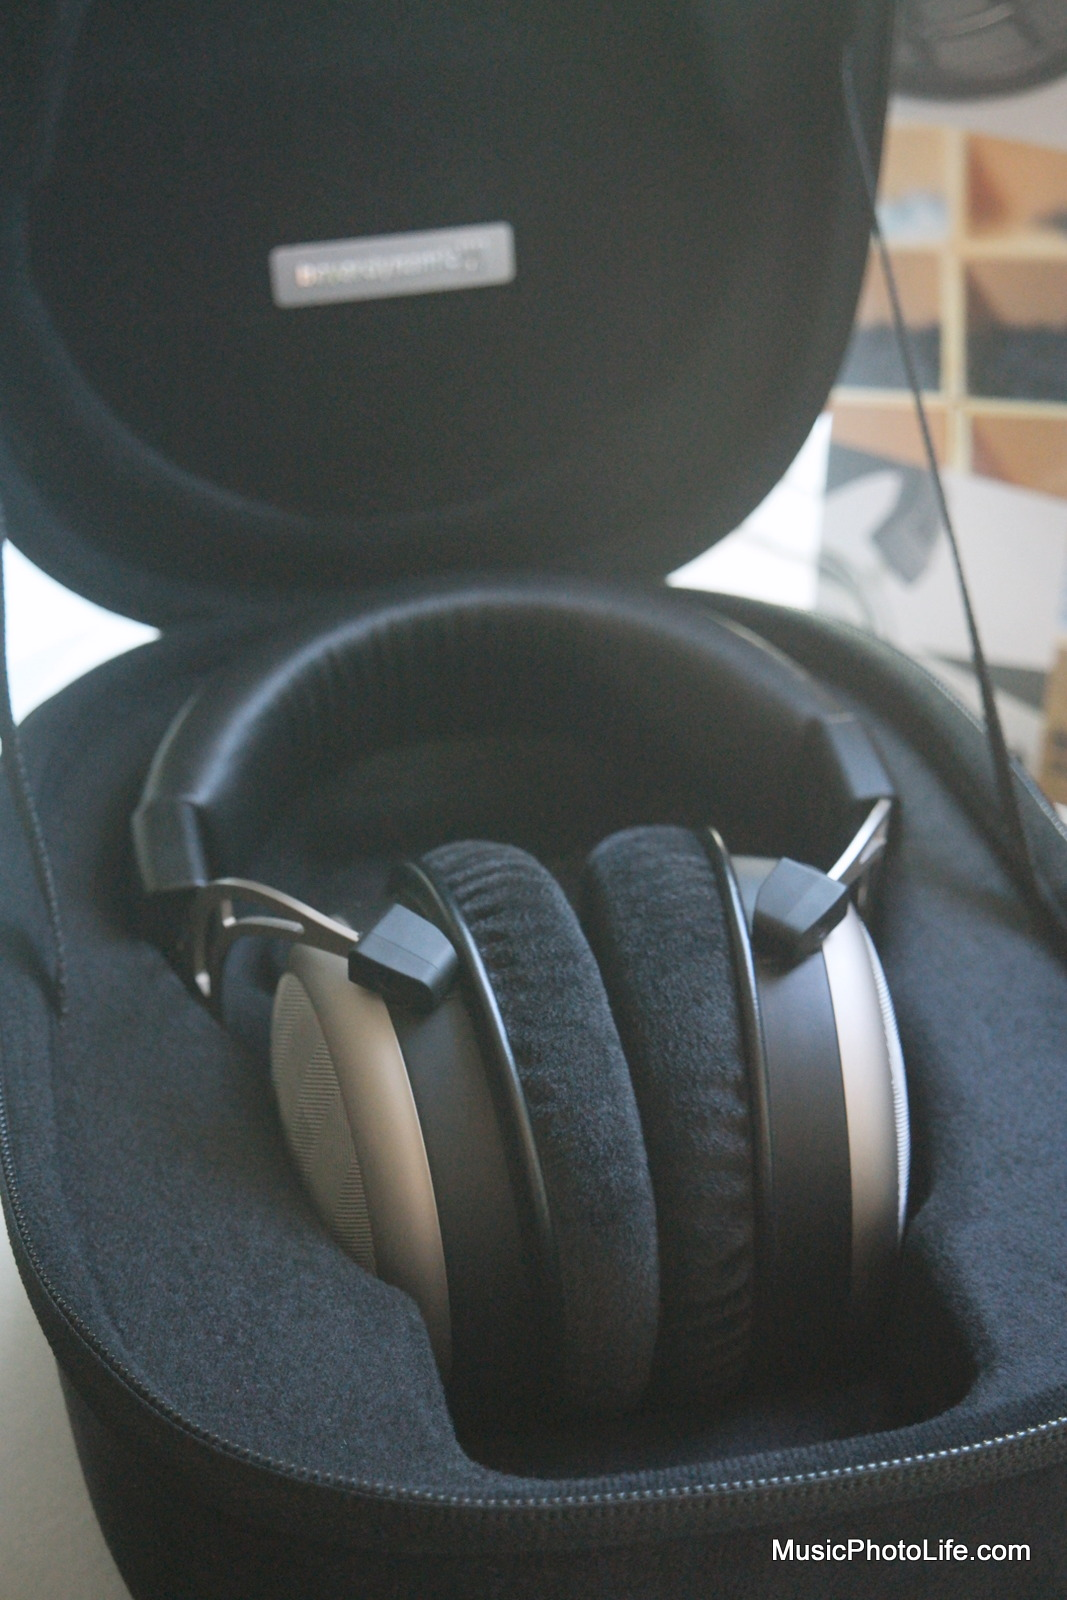 Beyerdynamic T1 2nd Generation in box